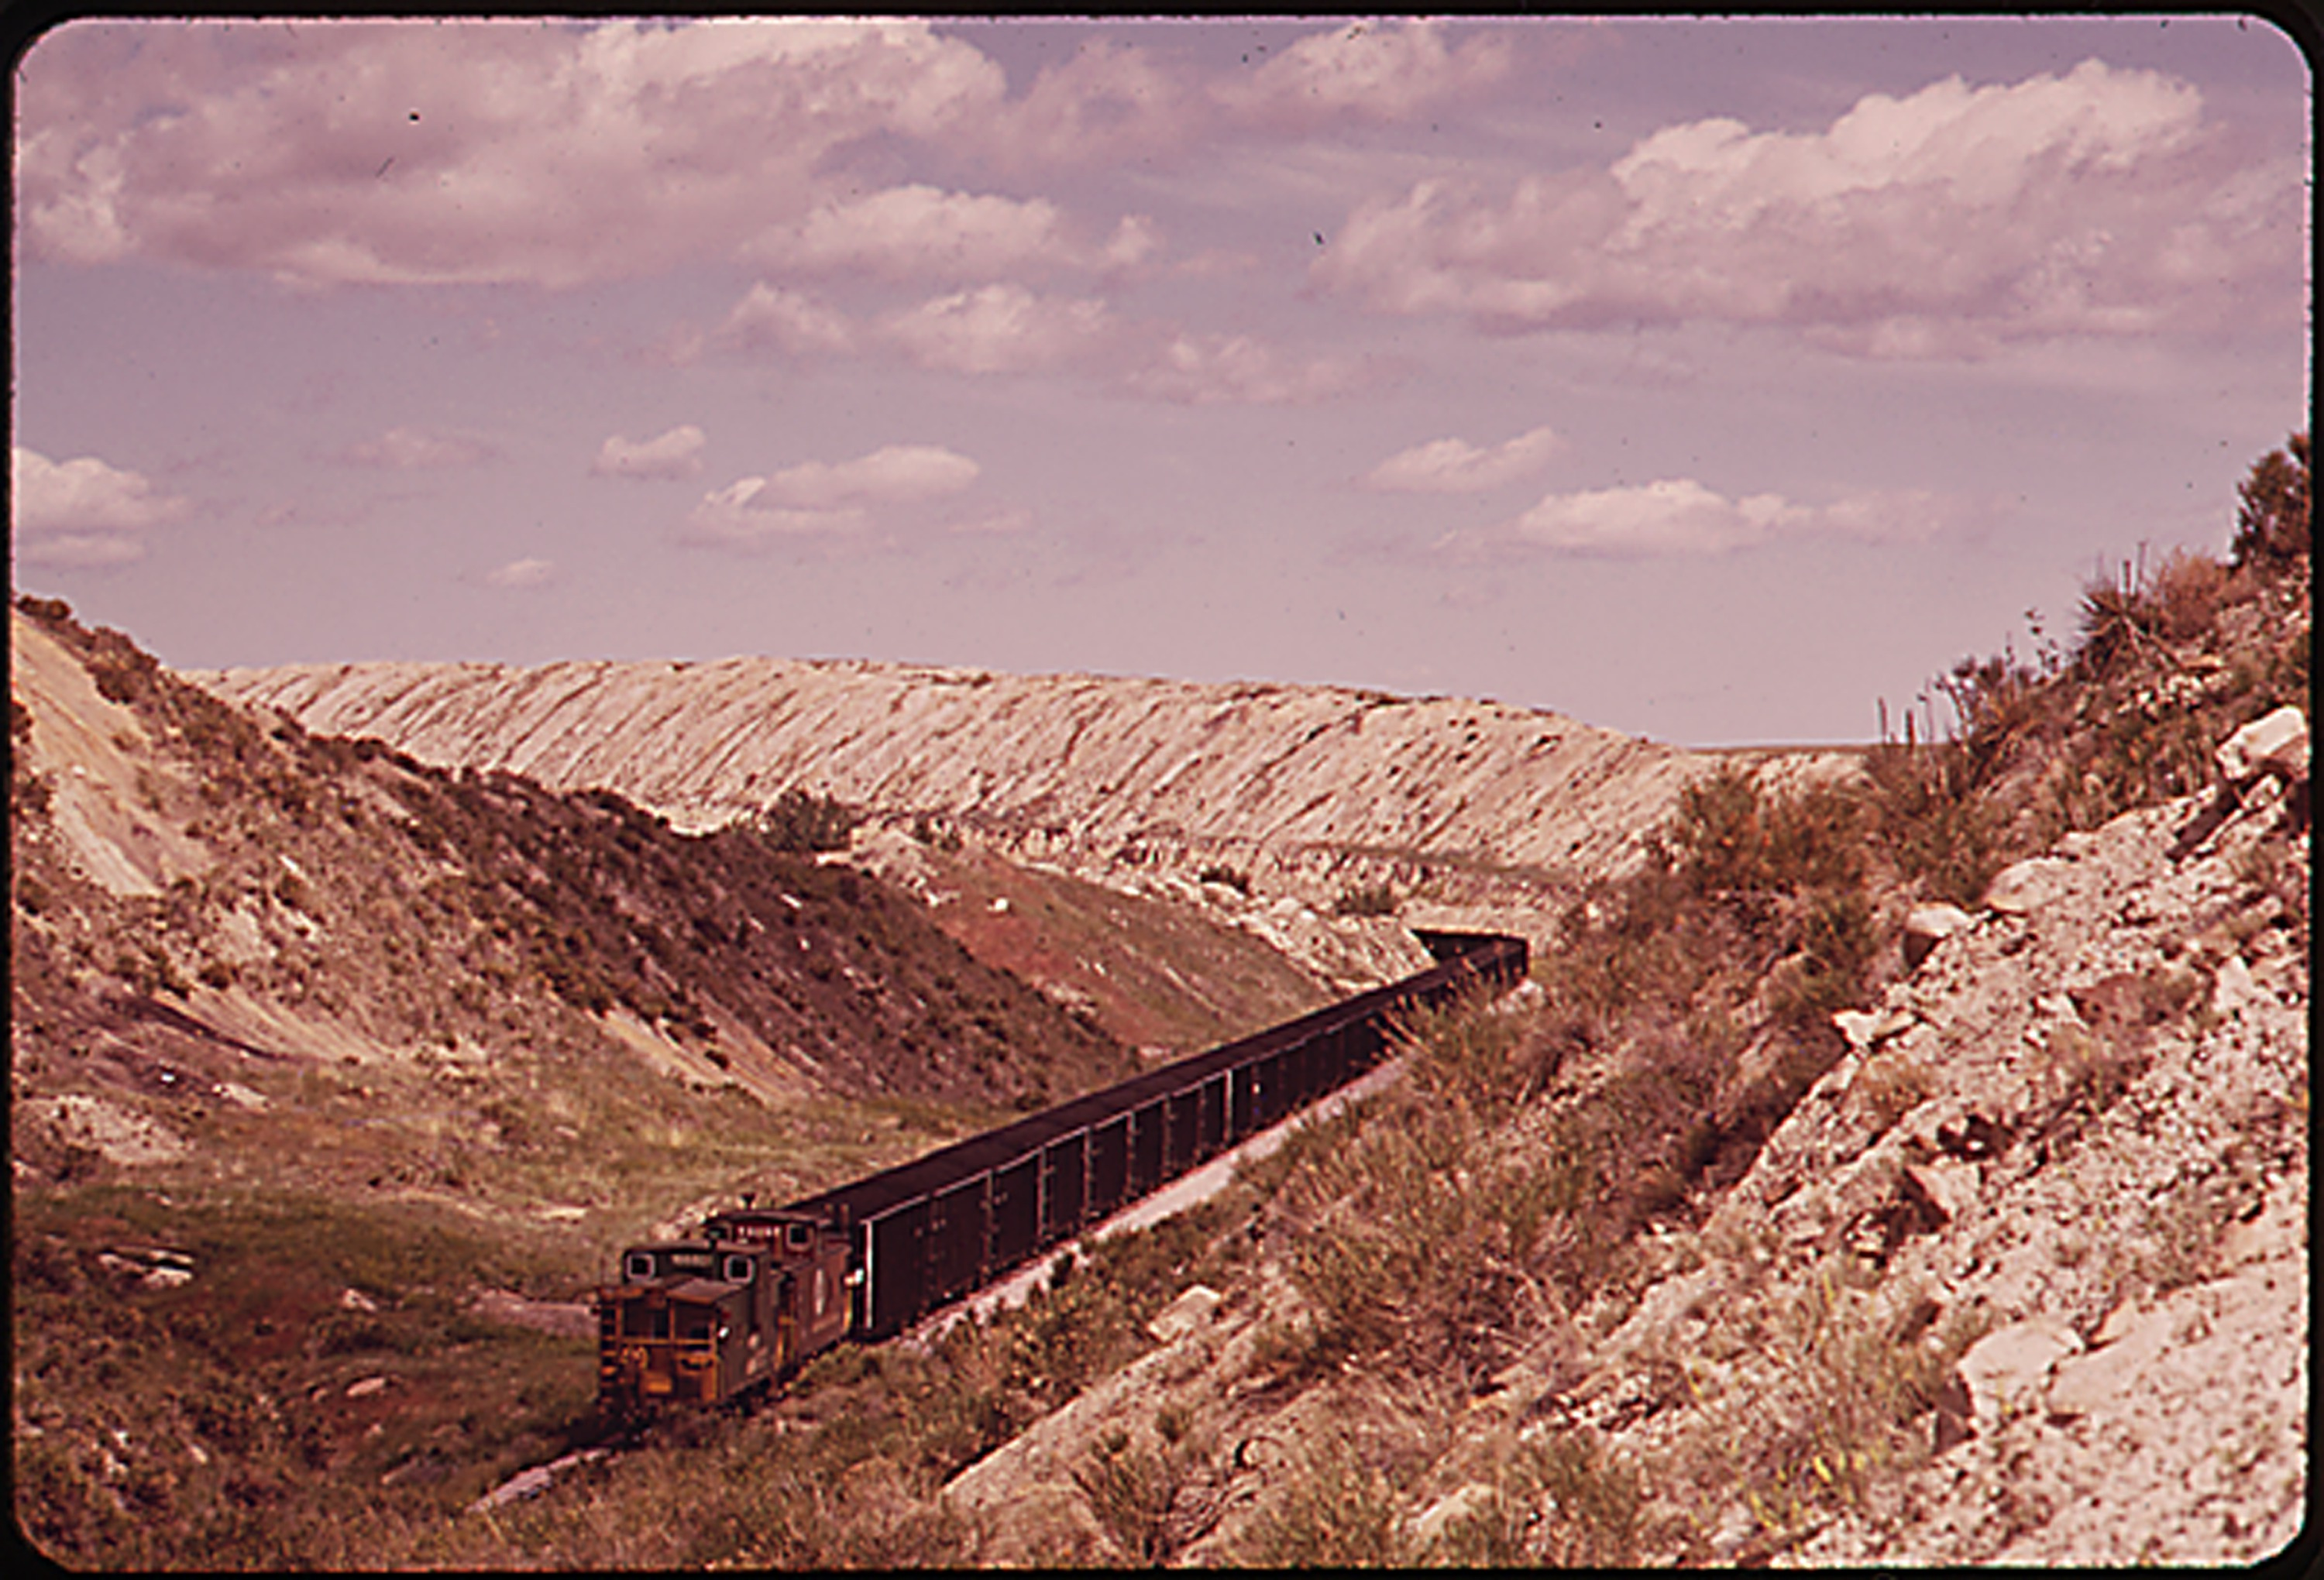 Http Commons Wikimedia Org Wiki File A Trainload Of Coal From The Western Energy Mine Near Colstrip Passes Through A Landscape Of Old Strip Mining Spoil Nara 549131 Jpg